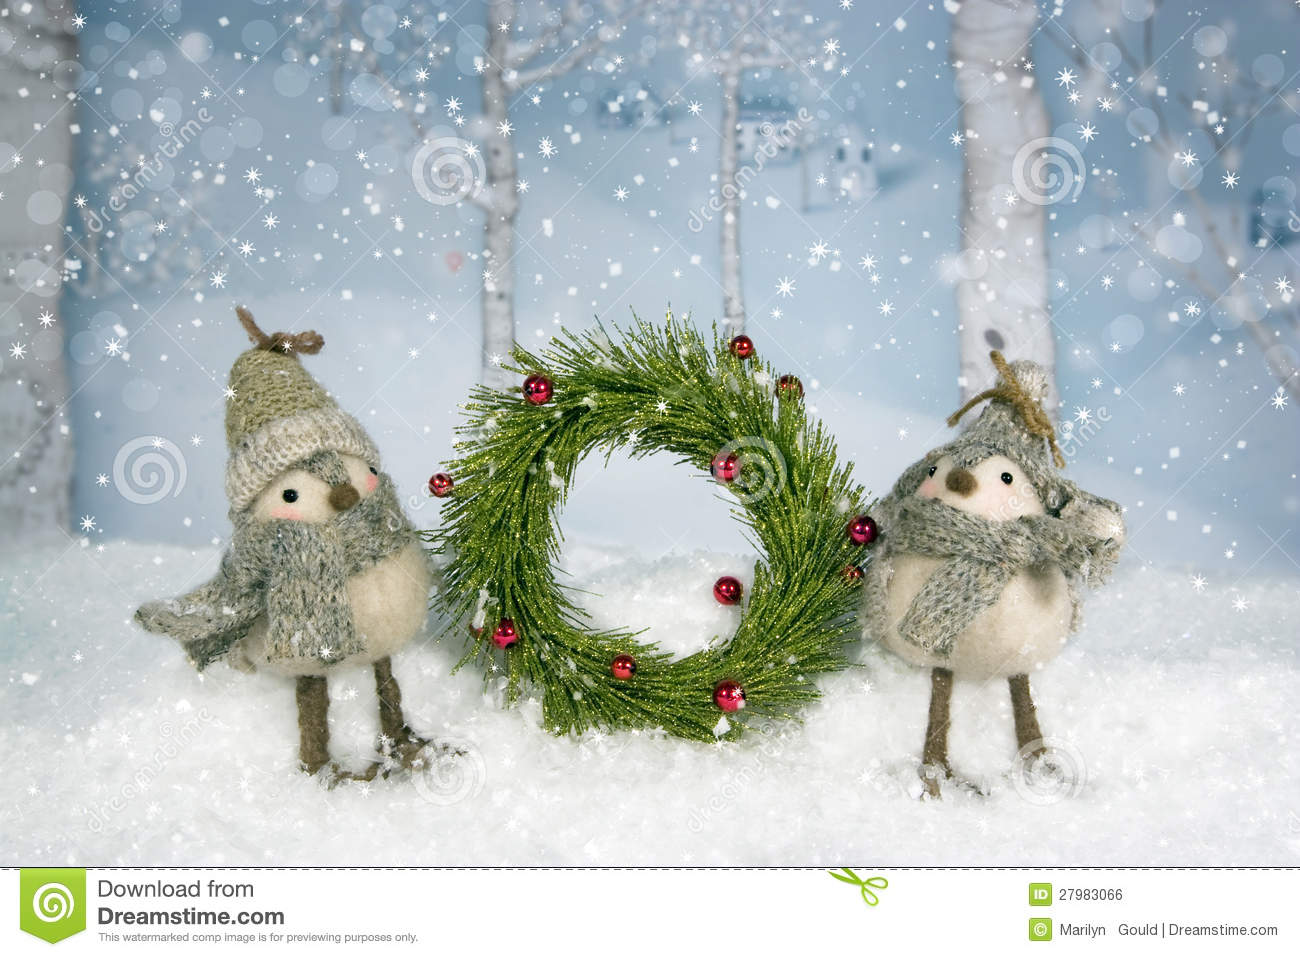 Birch trees in the winter stock photo image 2170700 - Christmas Birds Wreath Royalty Free Stock Image Christmas Birds Wreath Birch Trees In The Winter